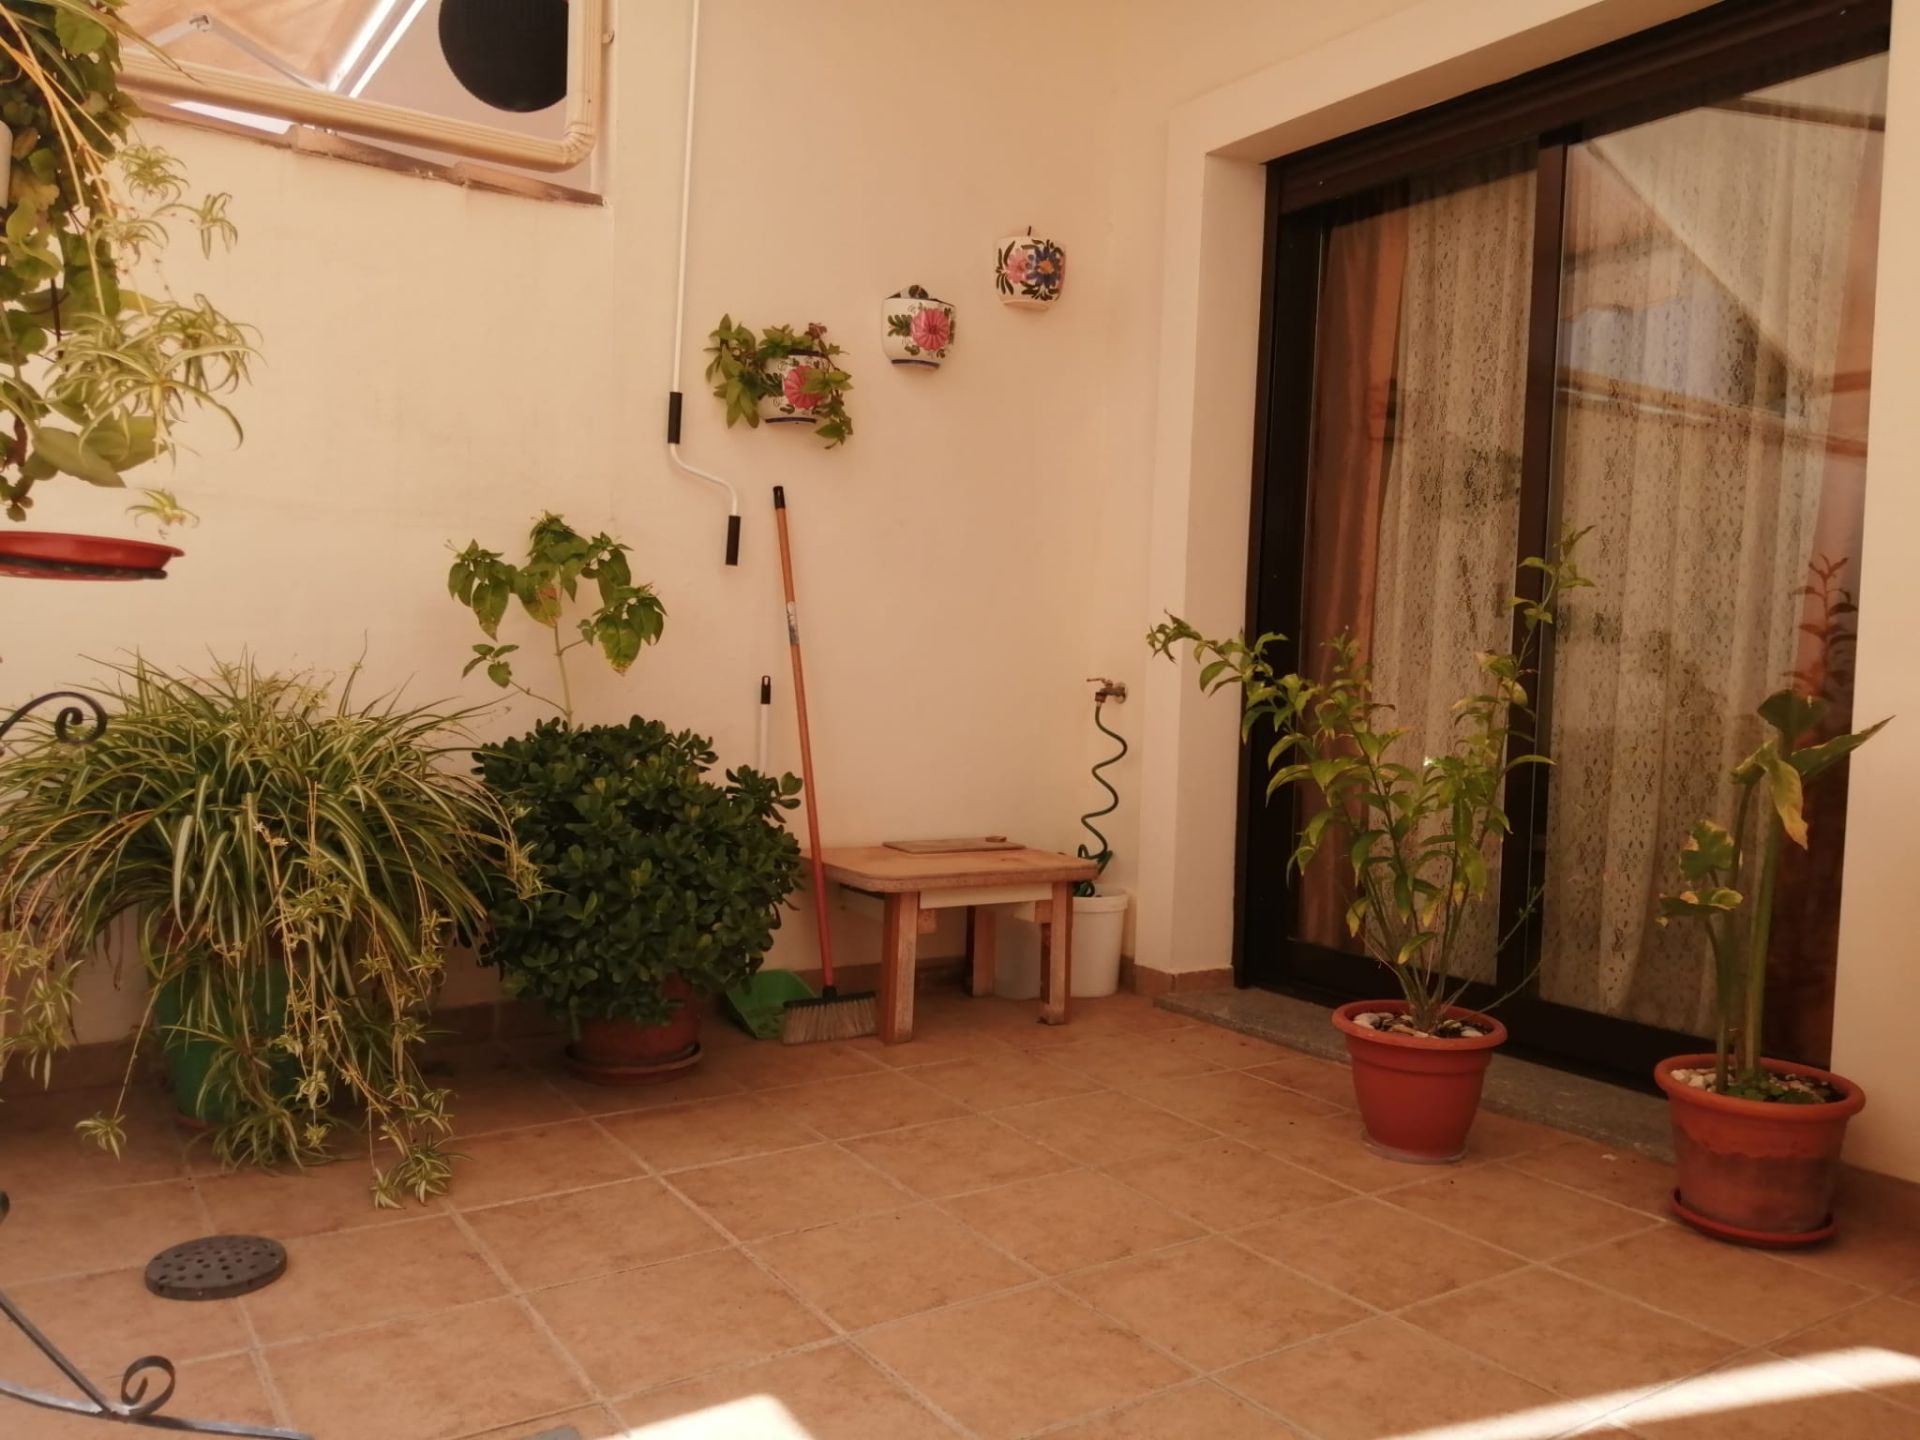 Flat (3 rooms - 77 sqm) in SAN PEDRO DEL PINATAR